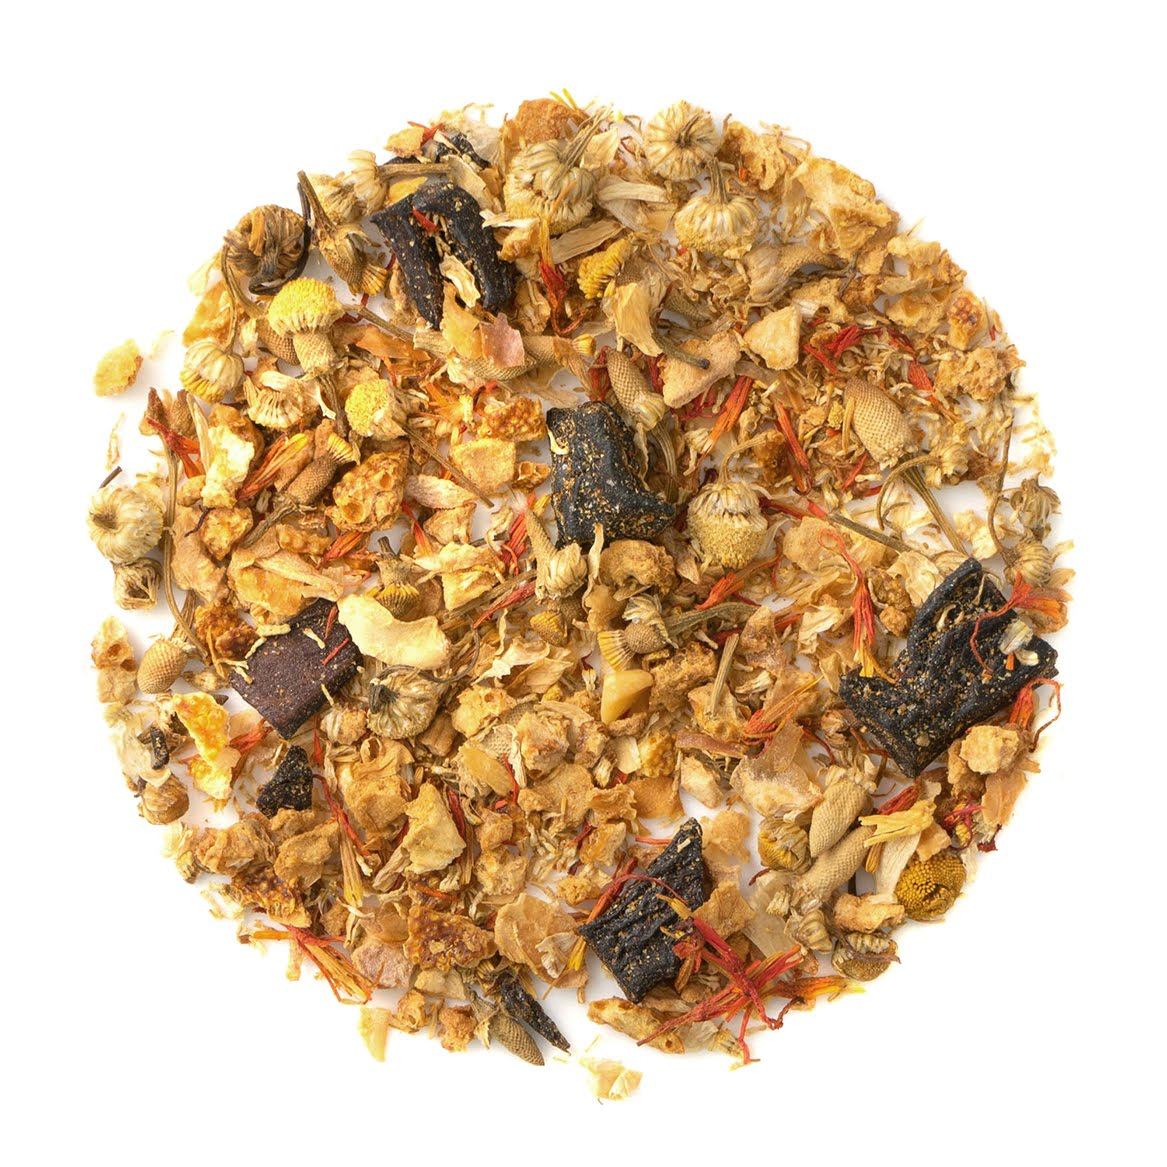 New products - Newest Teas, Herbal Tisanes, Tea Samplers, Tea Canisters - Heavenly Tea Leaves